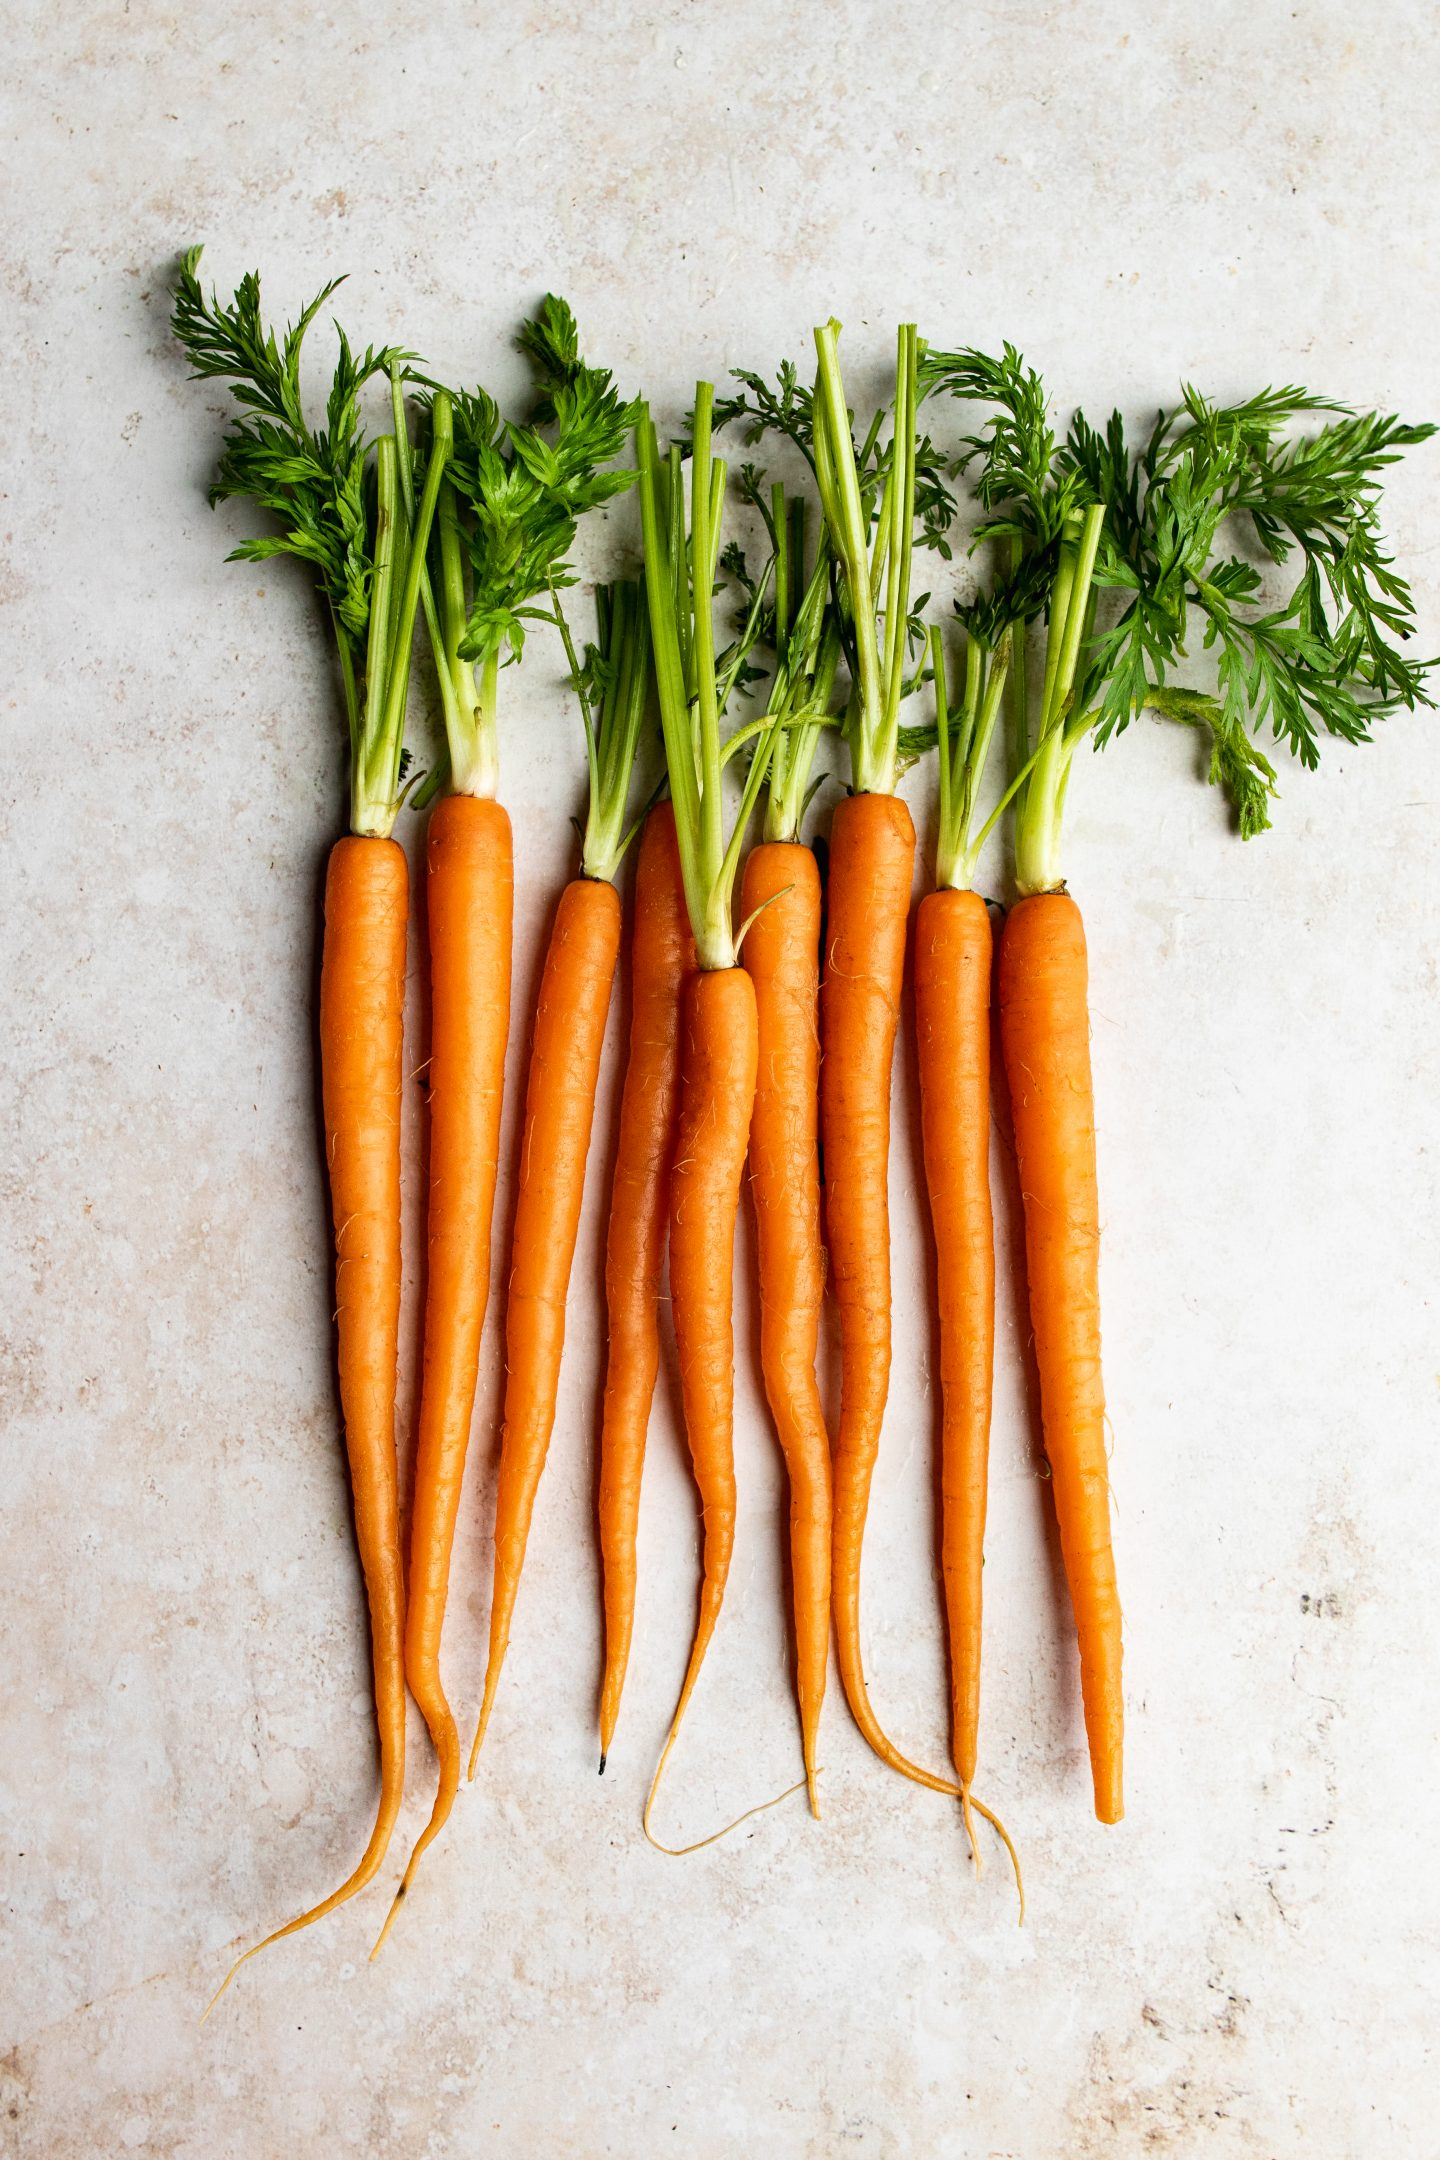 raw carrots with tops